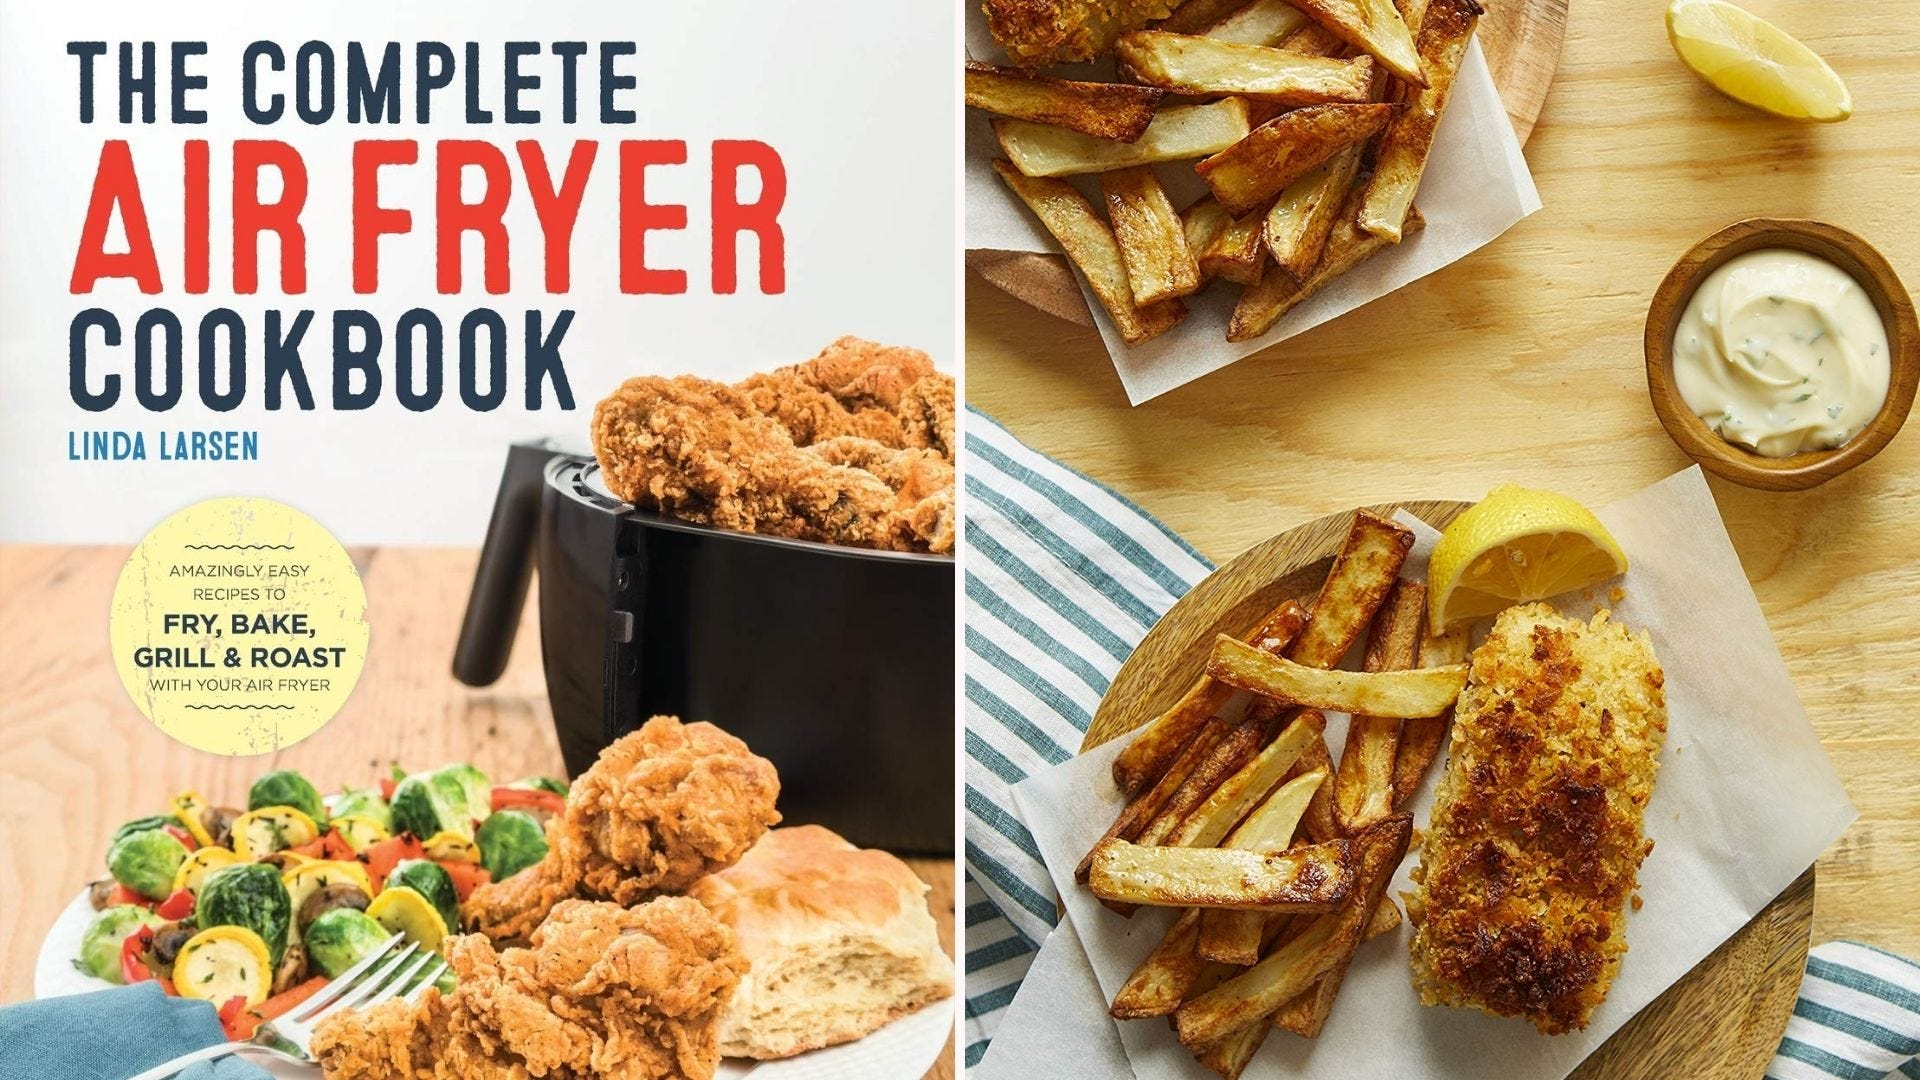 An air fryer cookbook with examples of the recipes found inside.